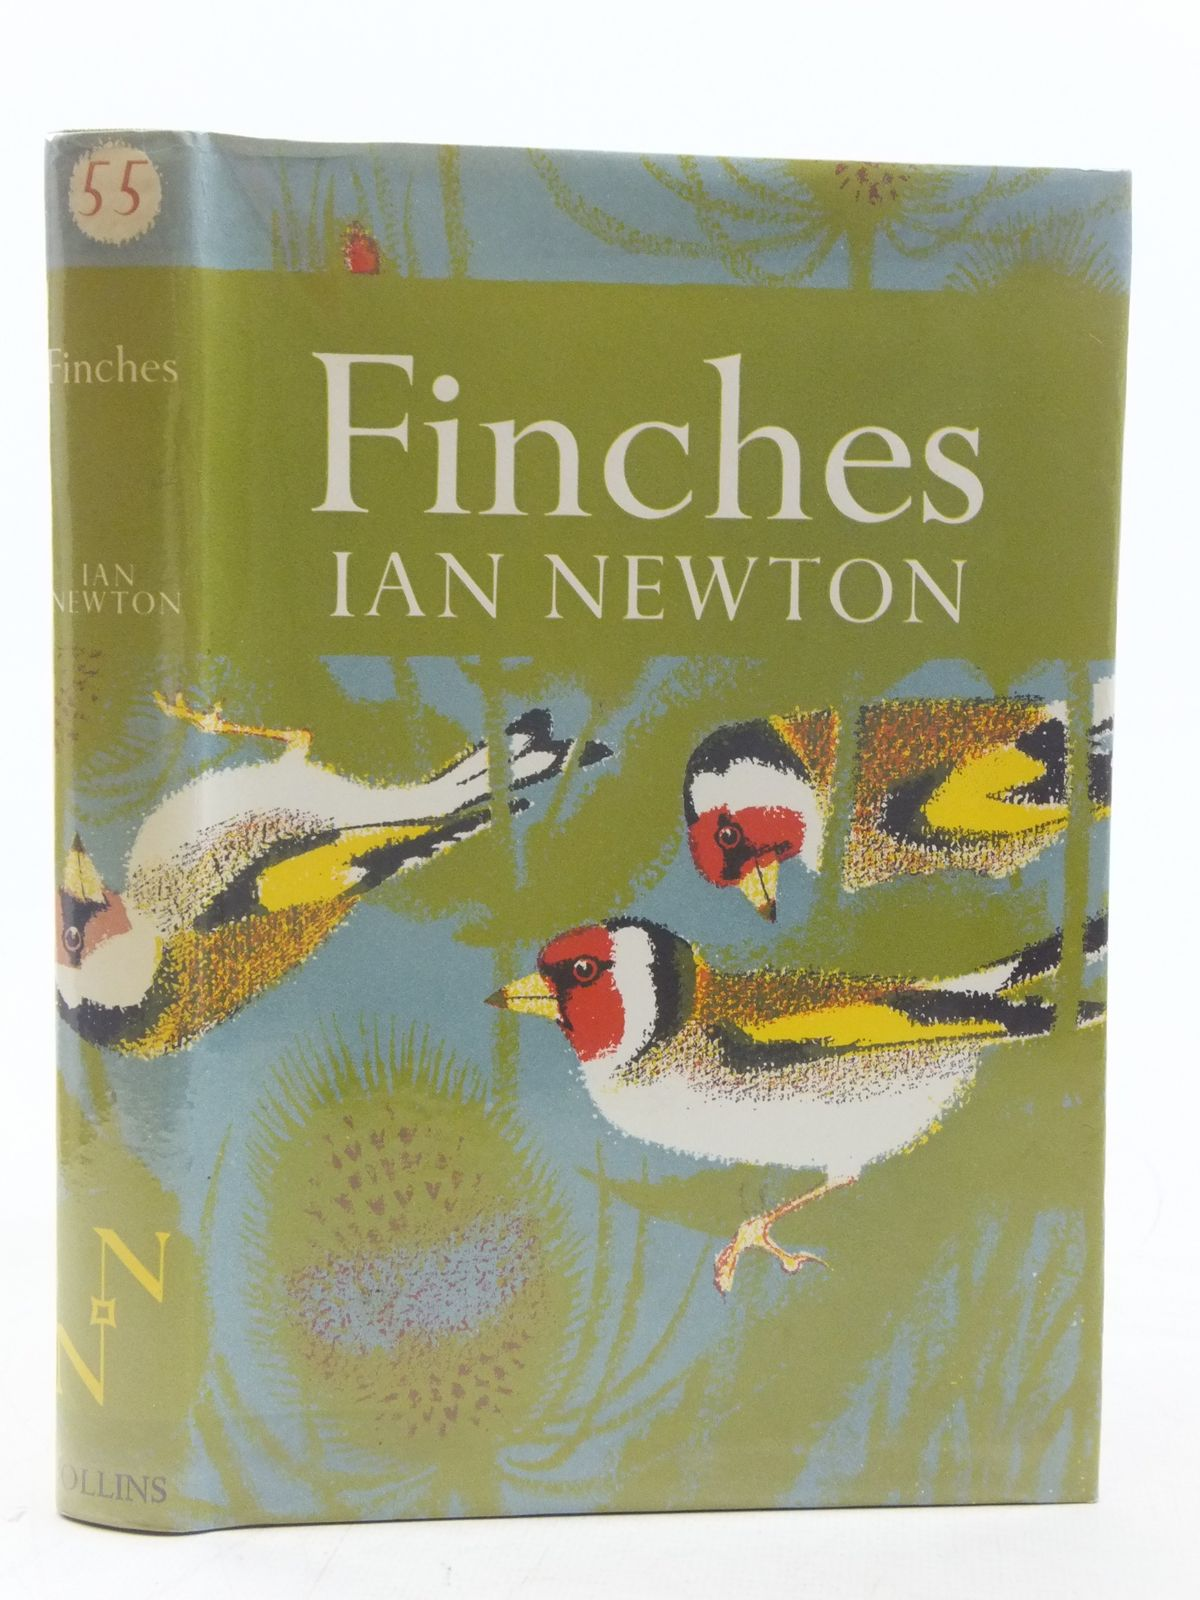 Photo of FINCHES (NN 55) written by Newton, Ian illustrated by Heinzel, Hermann published by Collins (STOCK CODE: 2116585)  for sale by Stella & Rose's Books